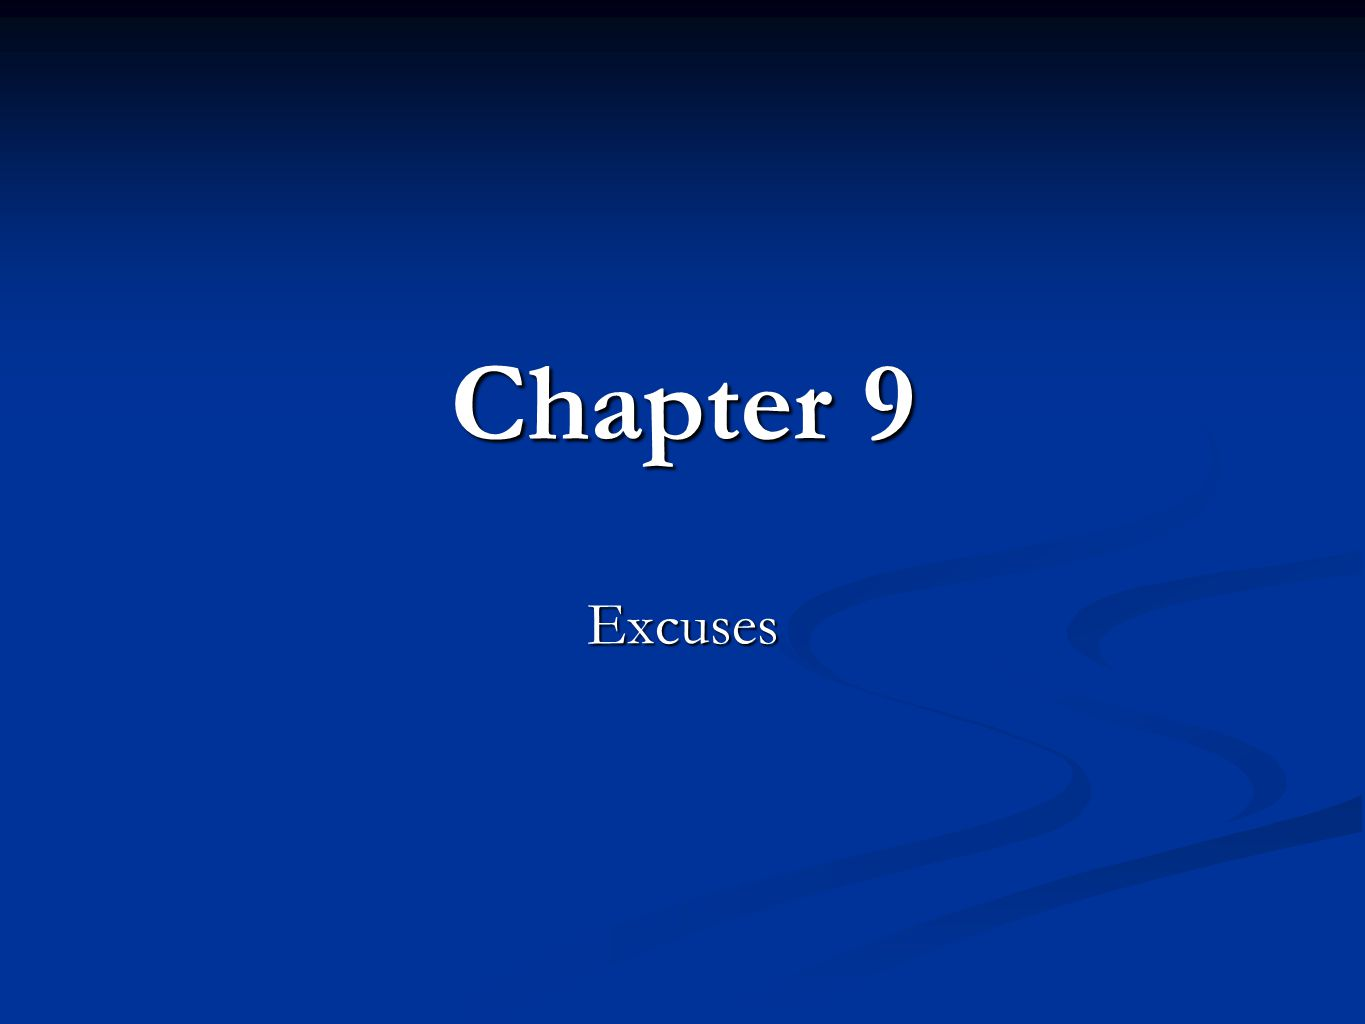 Chapter 9 Excuses